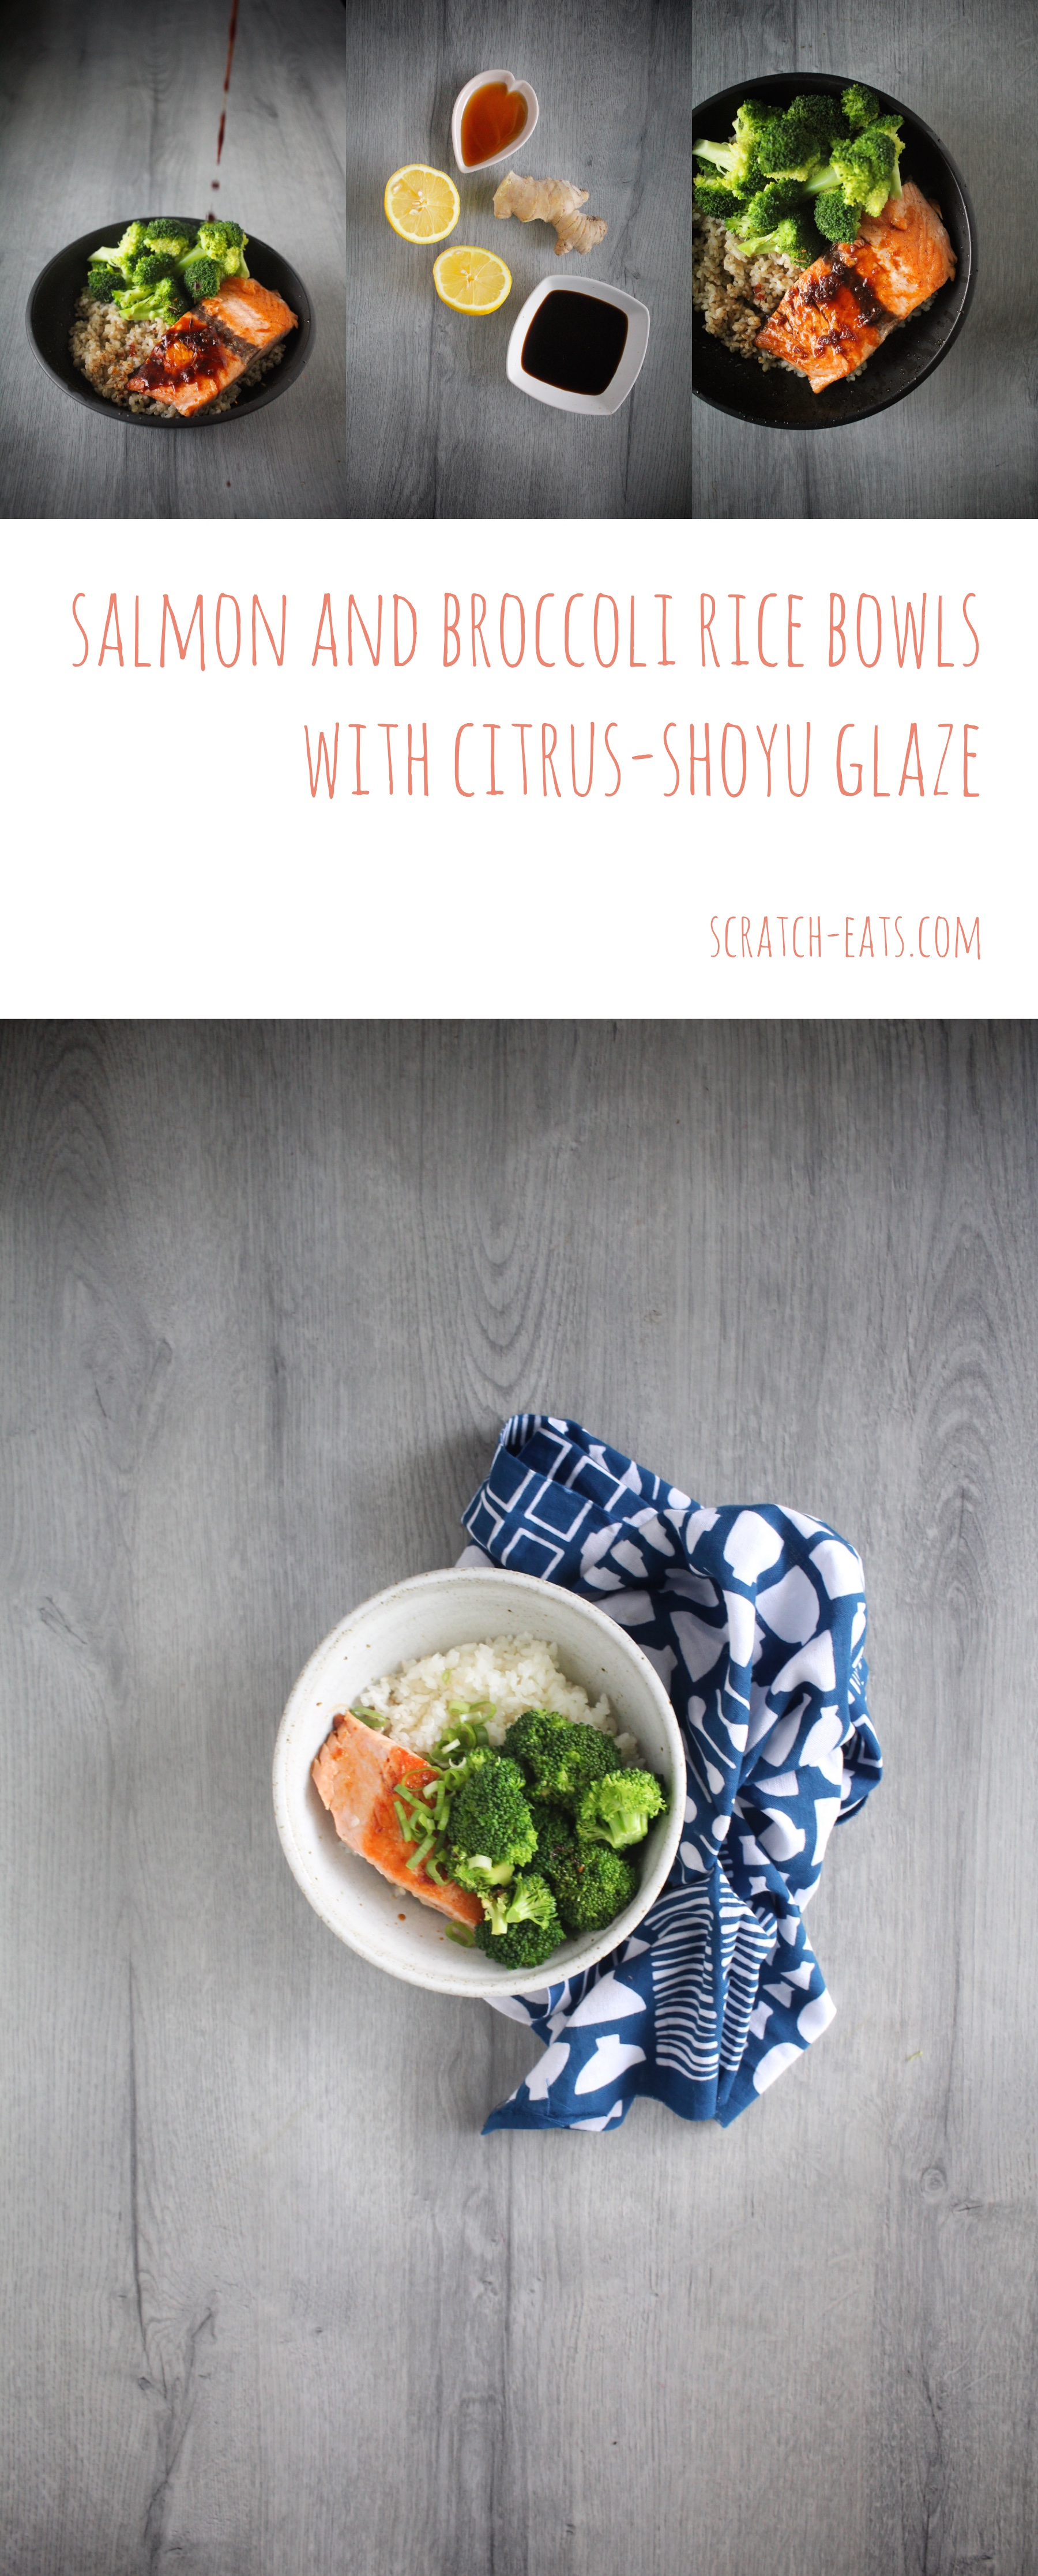 salmon & broccoli rice bowls with citrus-shoyu glaze